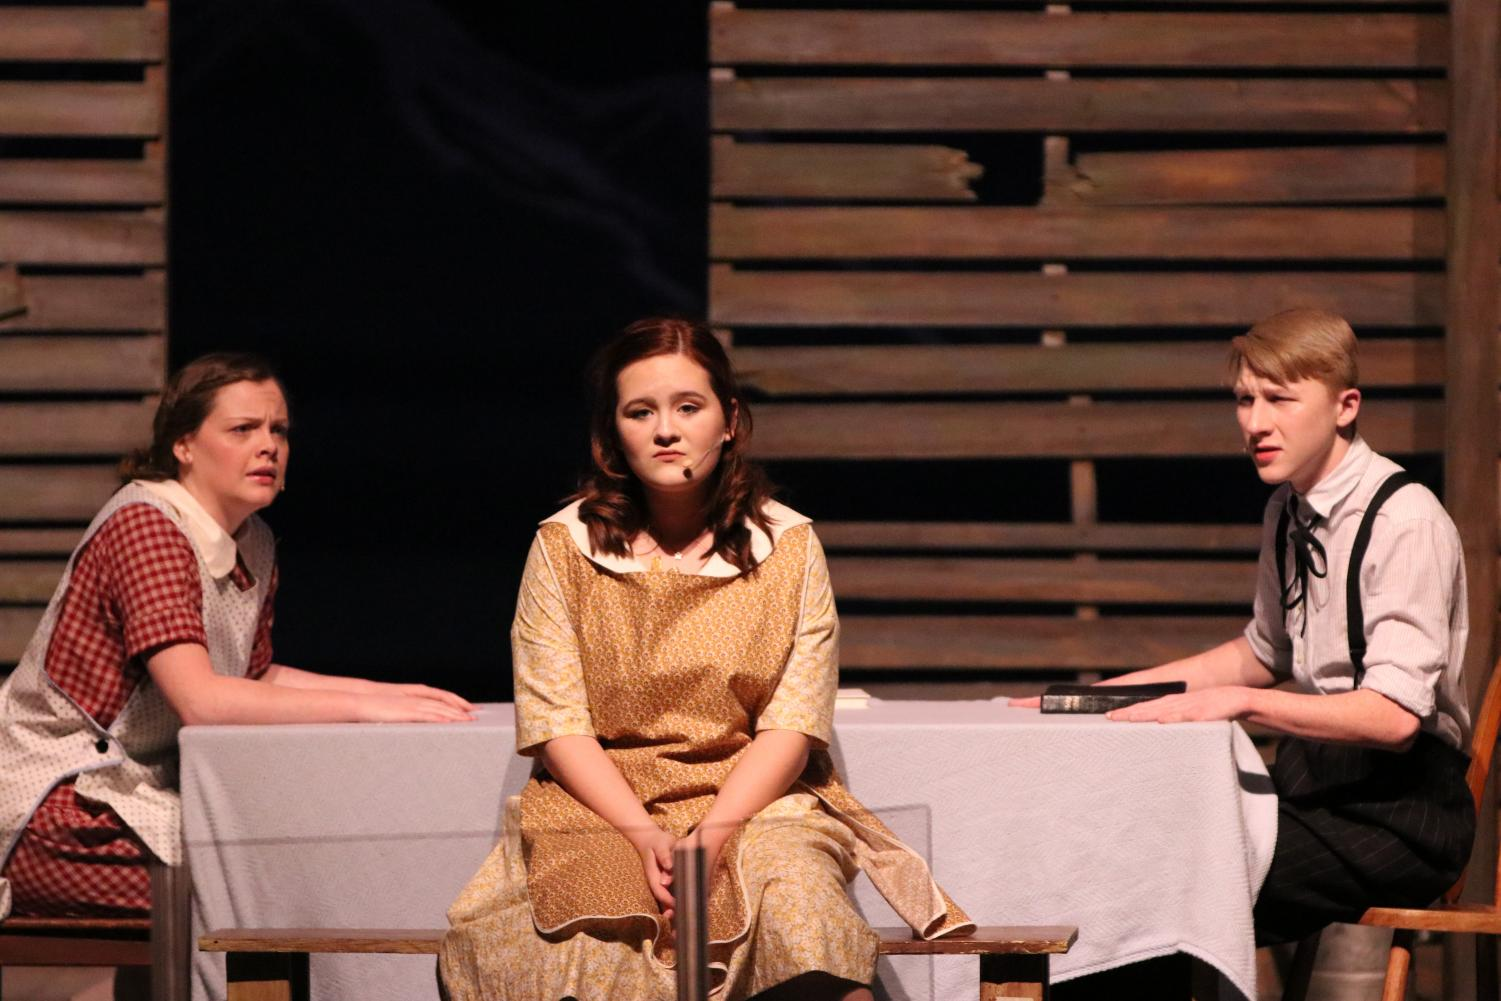 Lizzy Cooper, Ava Bryant and Hayden Olds star in the latest theater production, Bright Star.